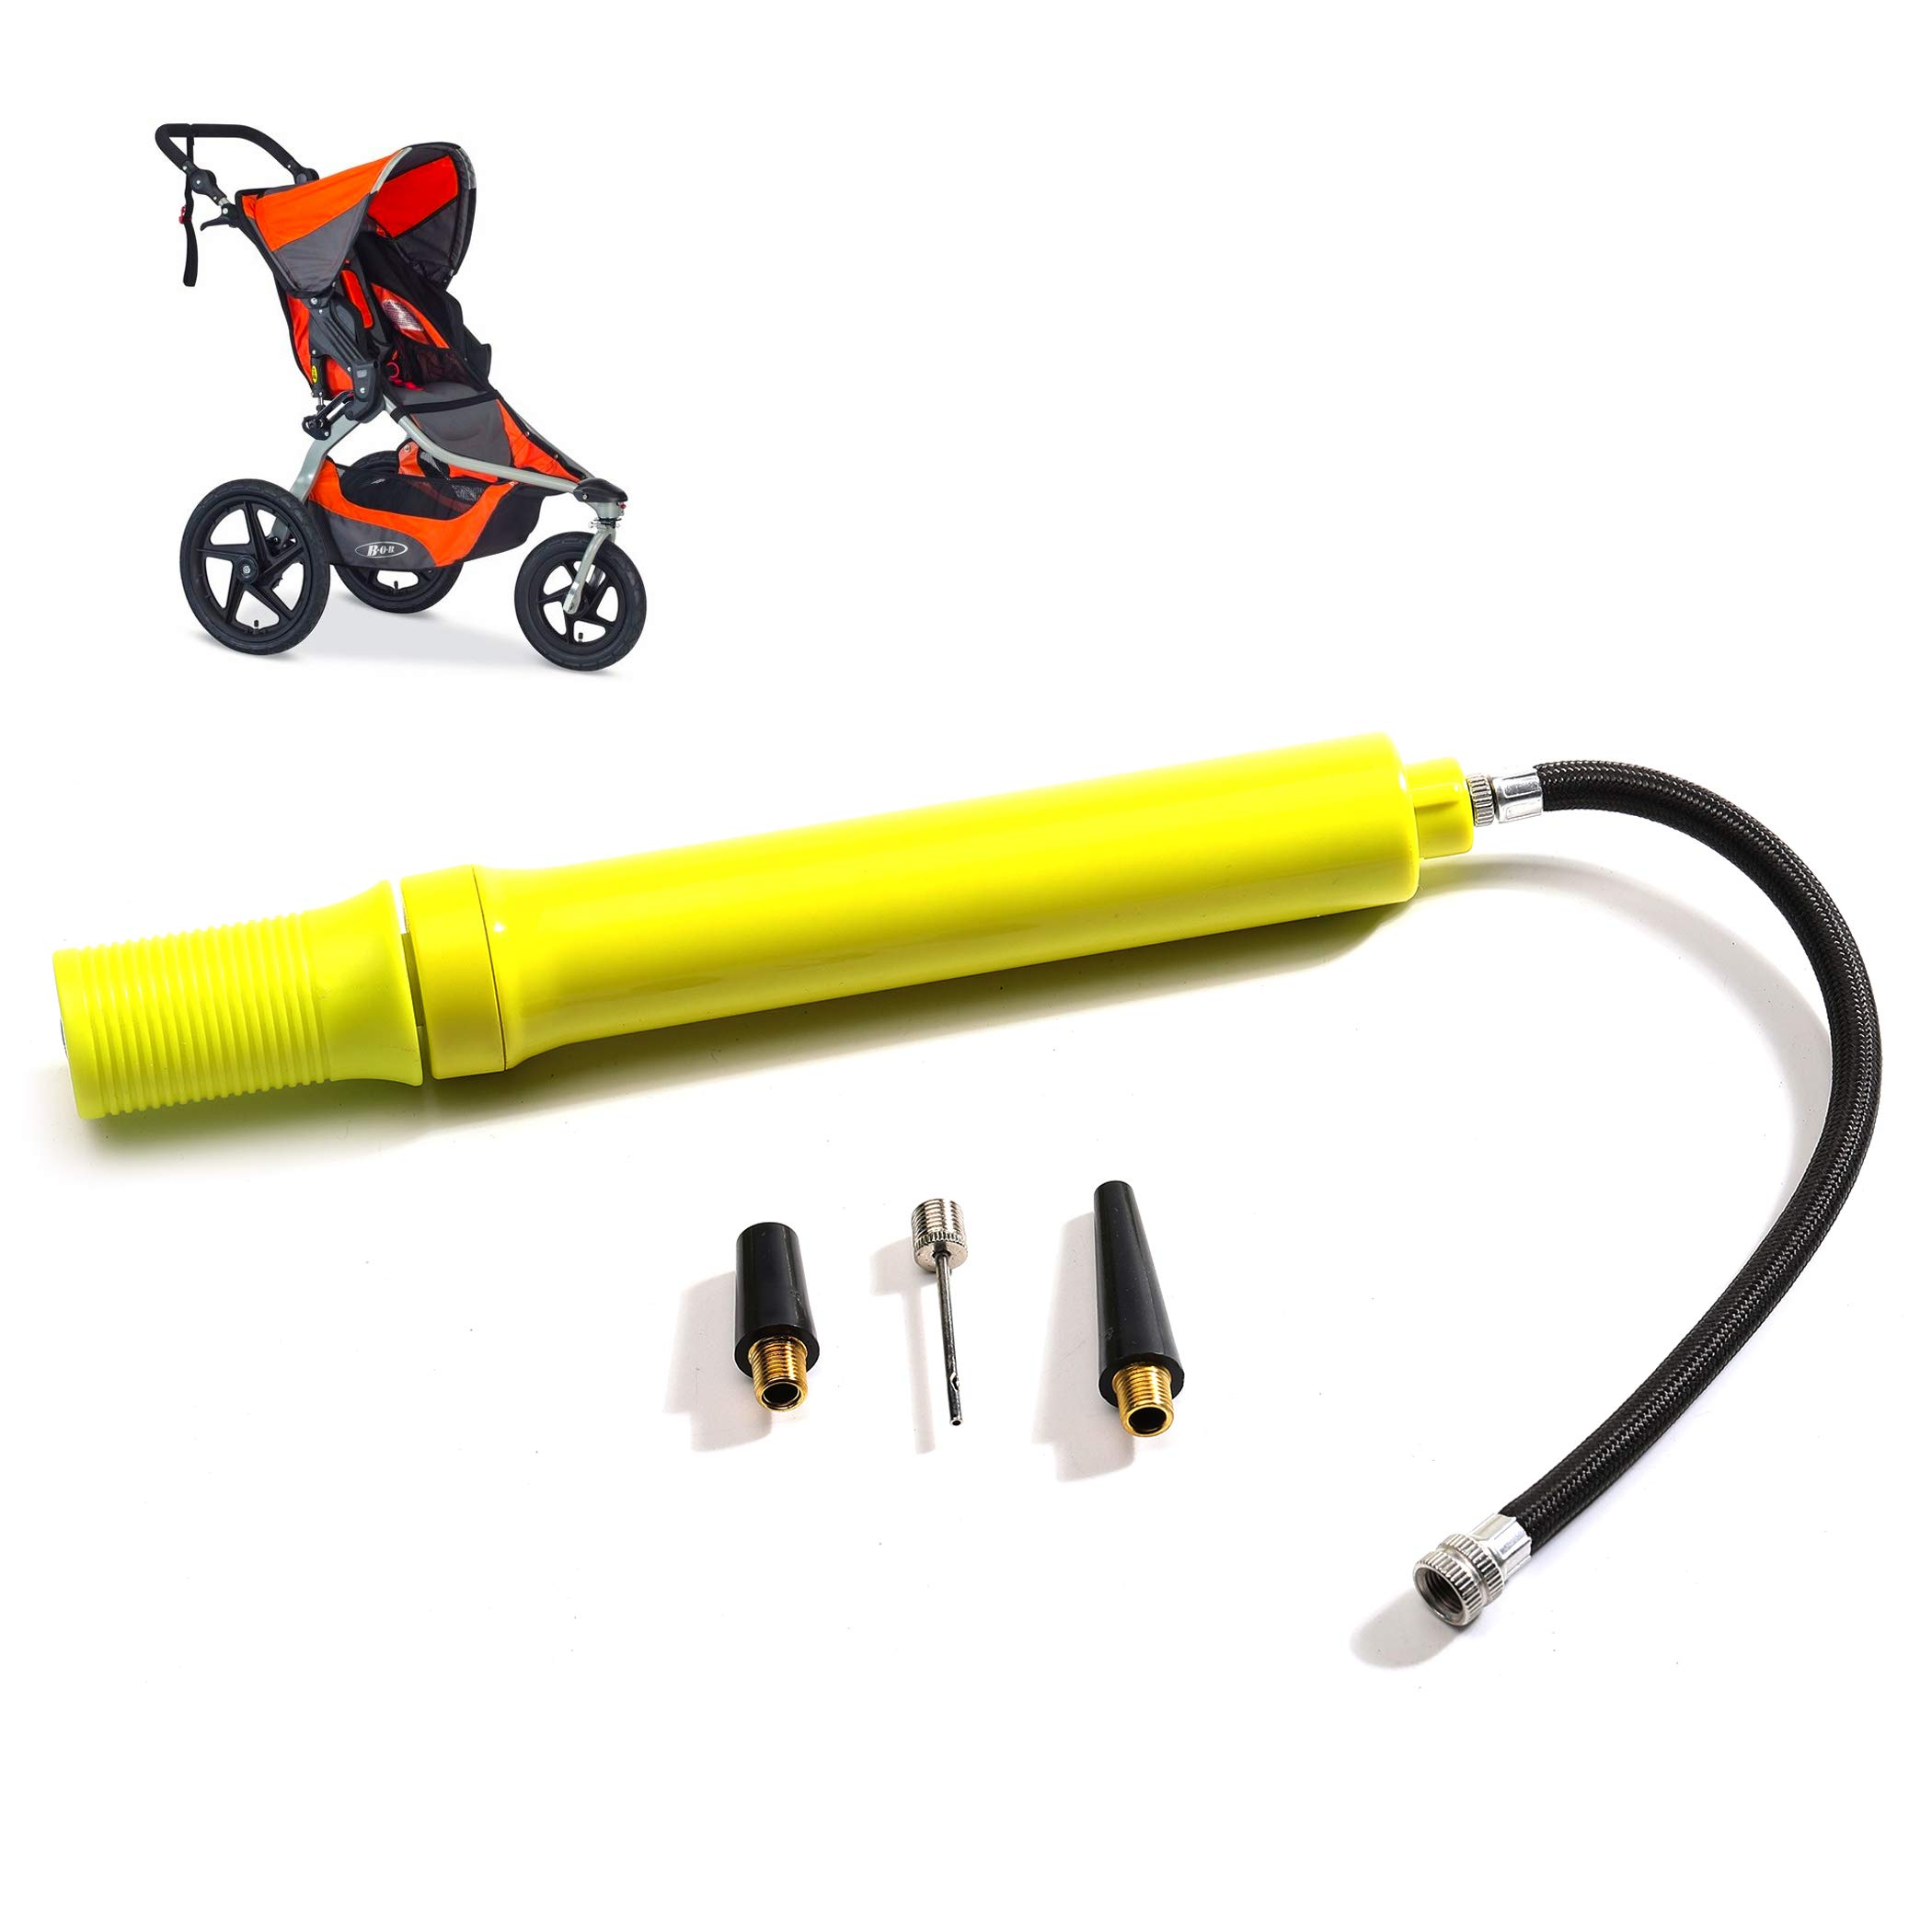 Baby Stroller Tire Pump - with Oversized Pistol Designed That Saves Over 30% Fewer Strokes - Made from CNC Aluminum and Fits All Stroller Tires by CalPalmy